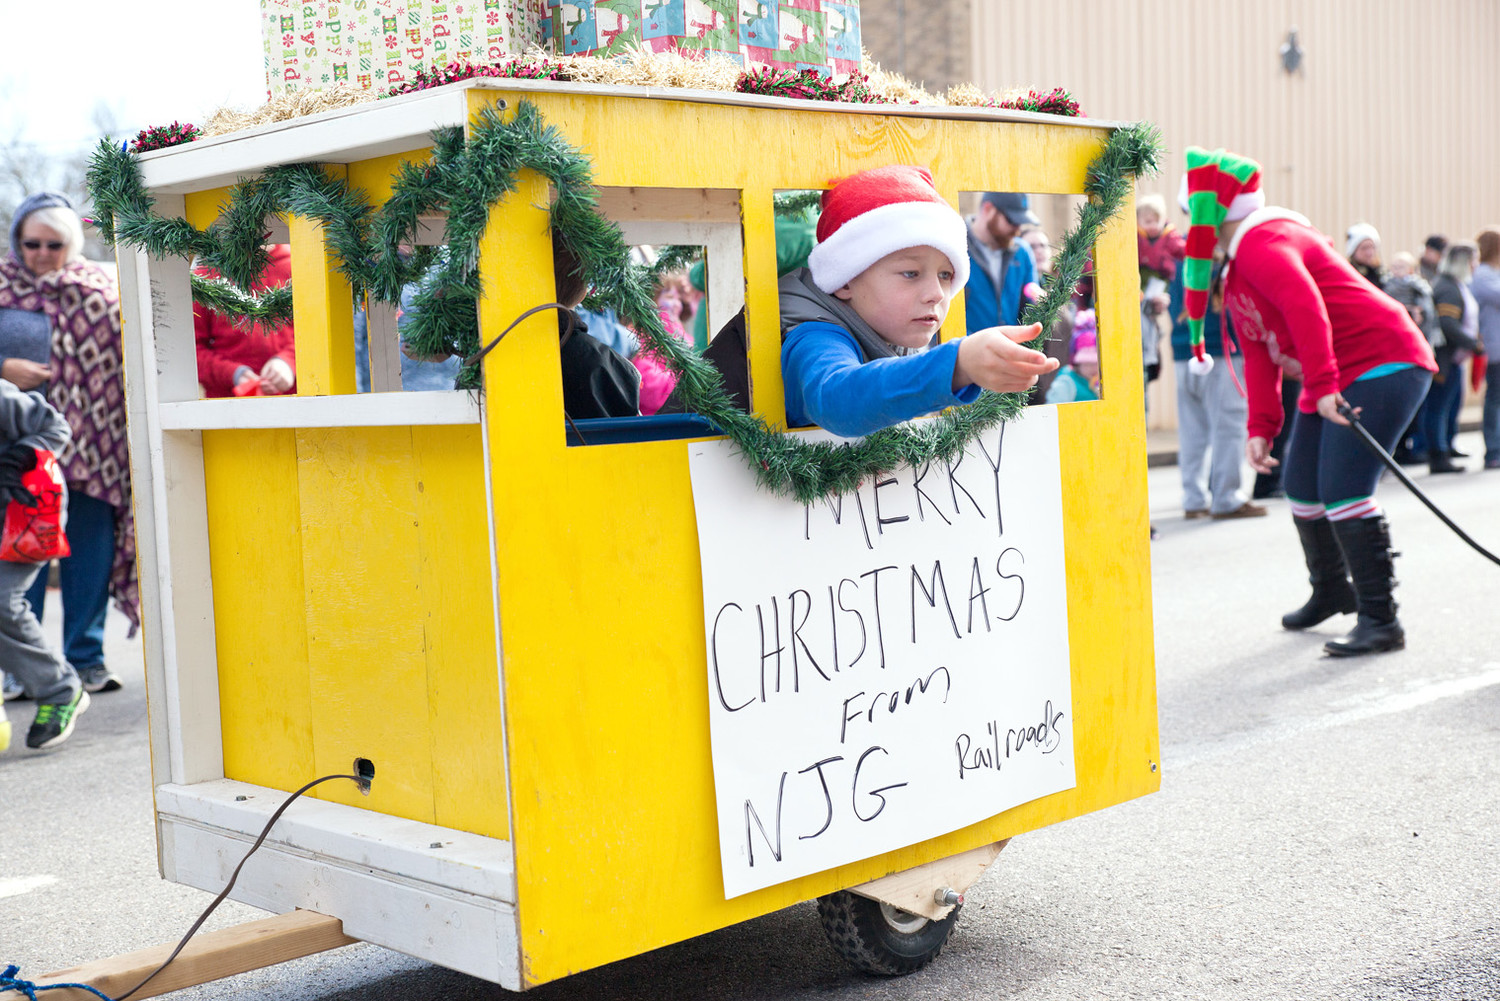 THIS BOY FROM NJG Railroads tosses some candy to a parade attendee.